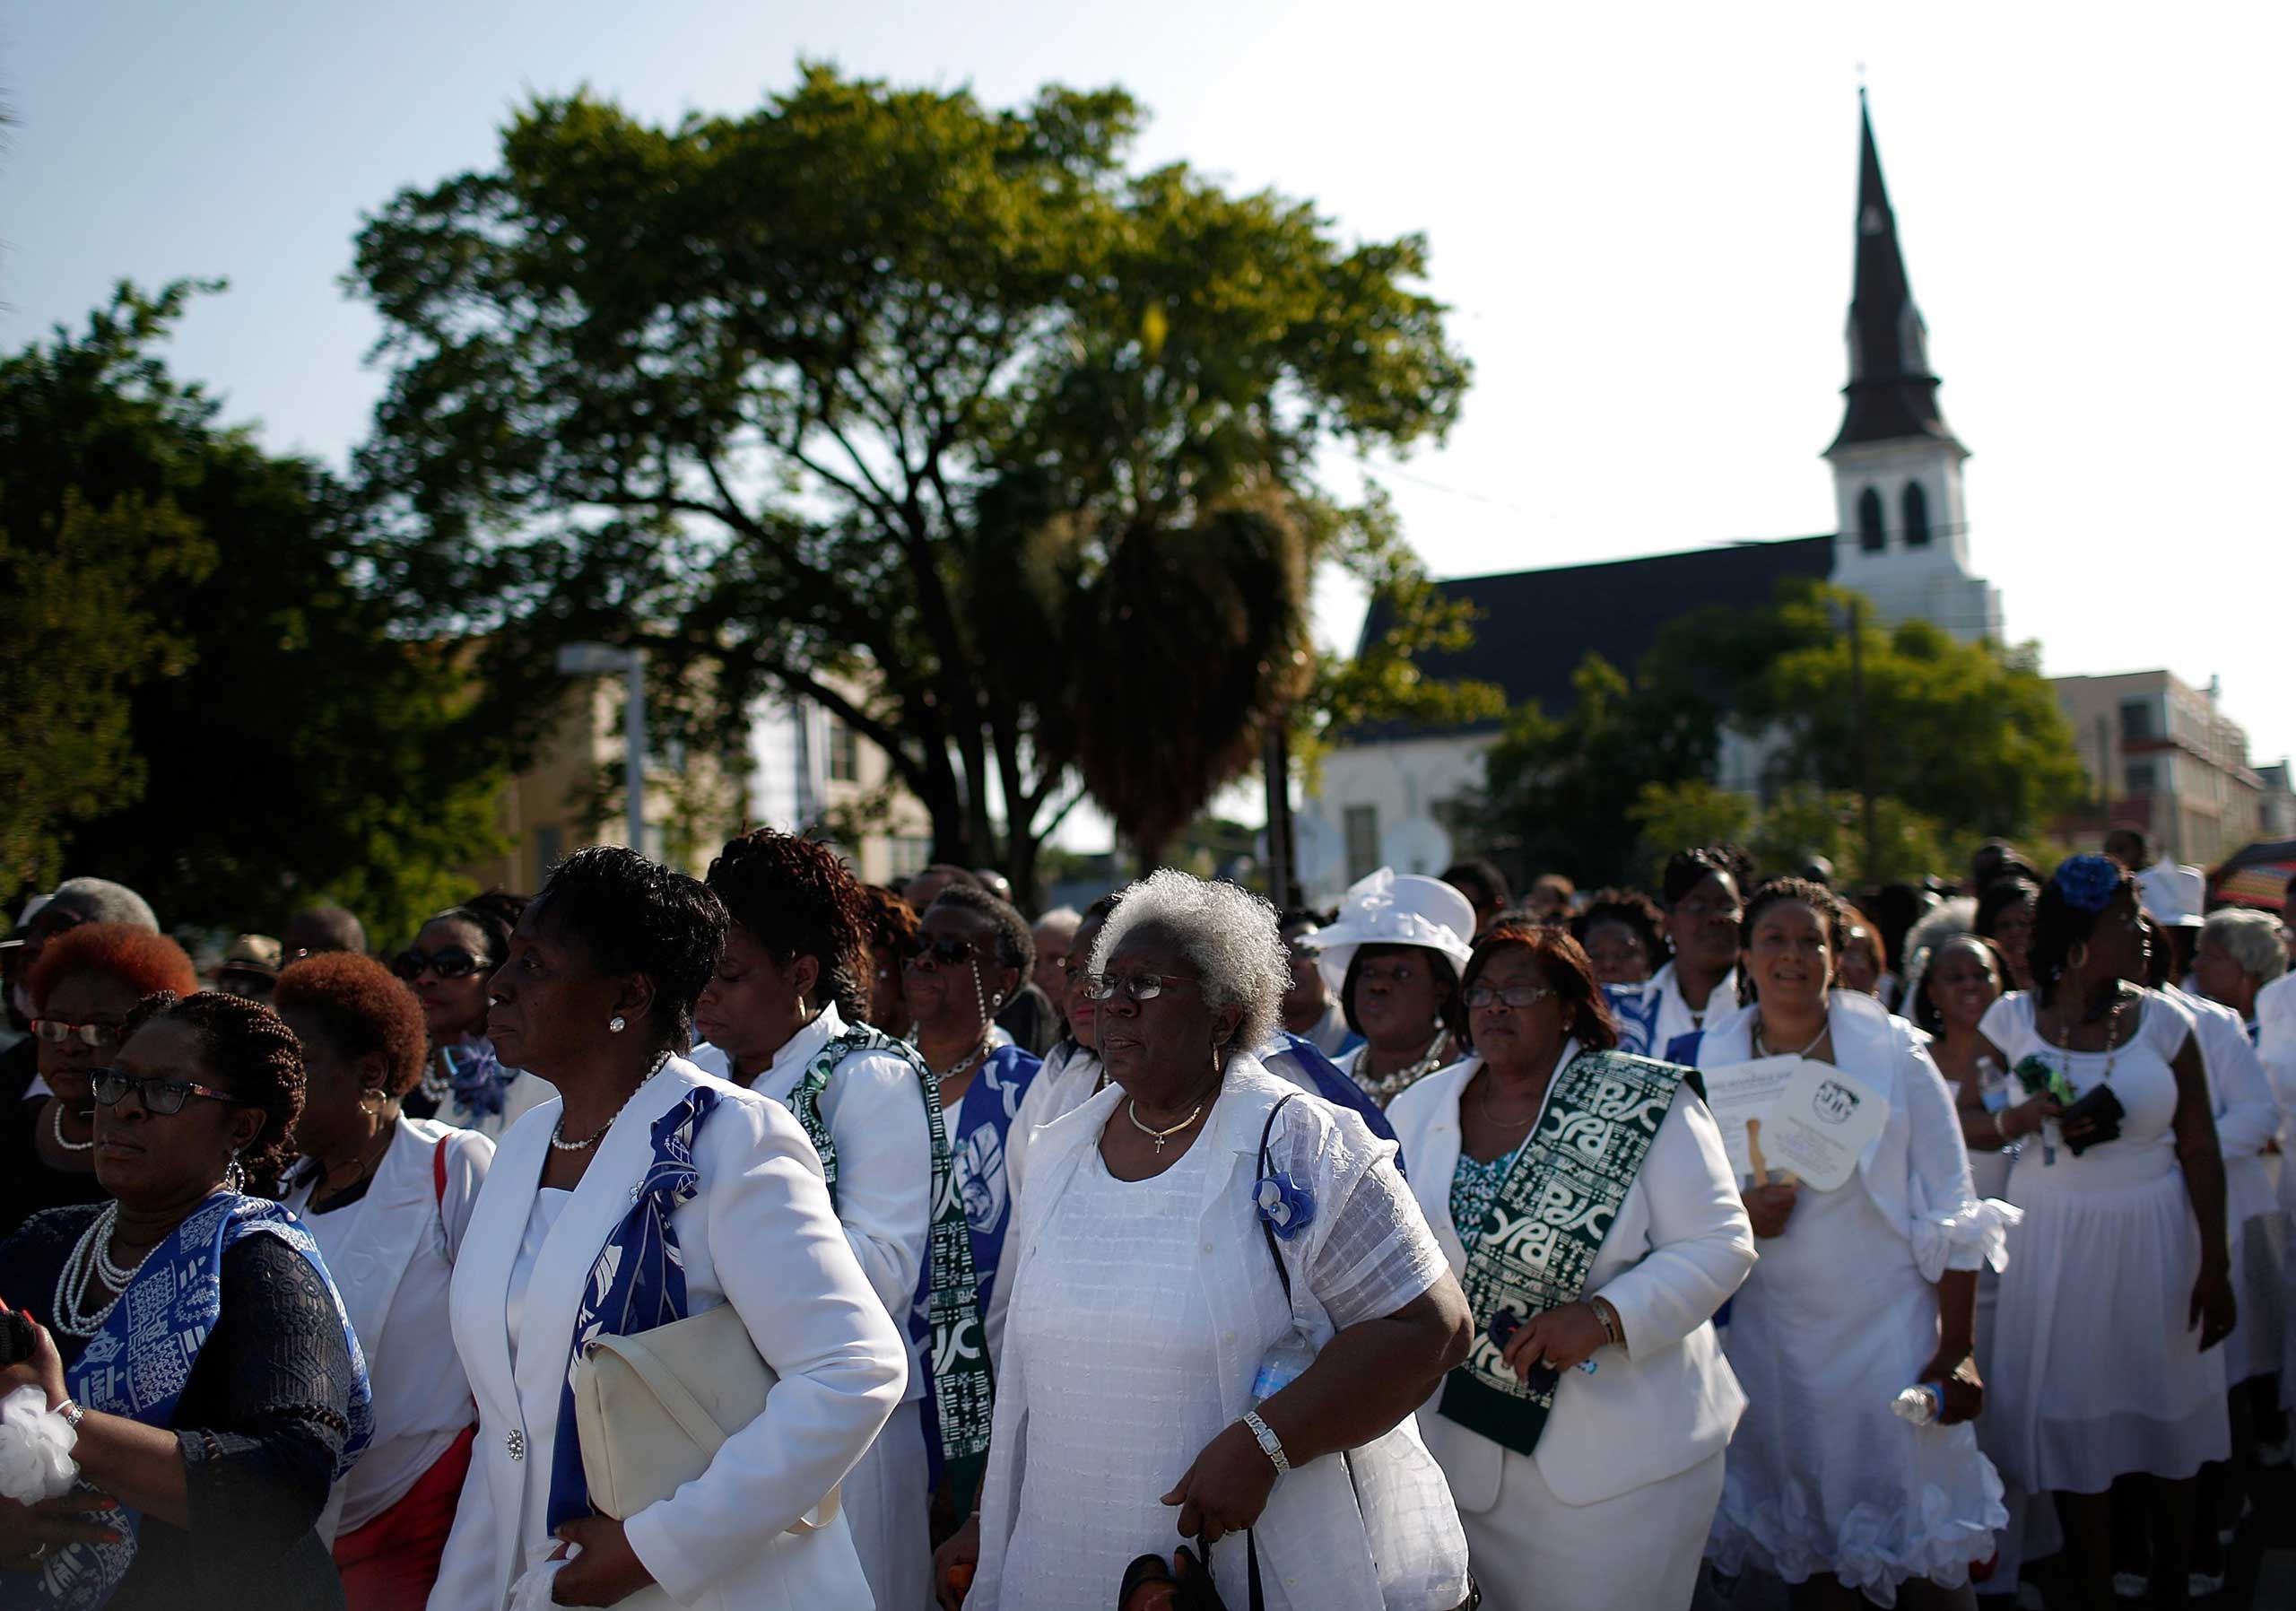 Women dressed in white wait to enter the funeral service for Rev. Clementa Pinckney outside Emanuel AME Church in Charleston, S.C. on June 26, 2015.